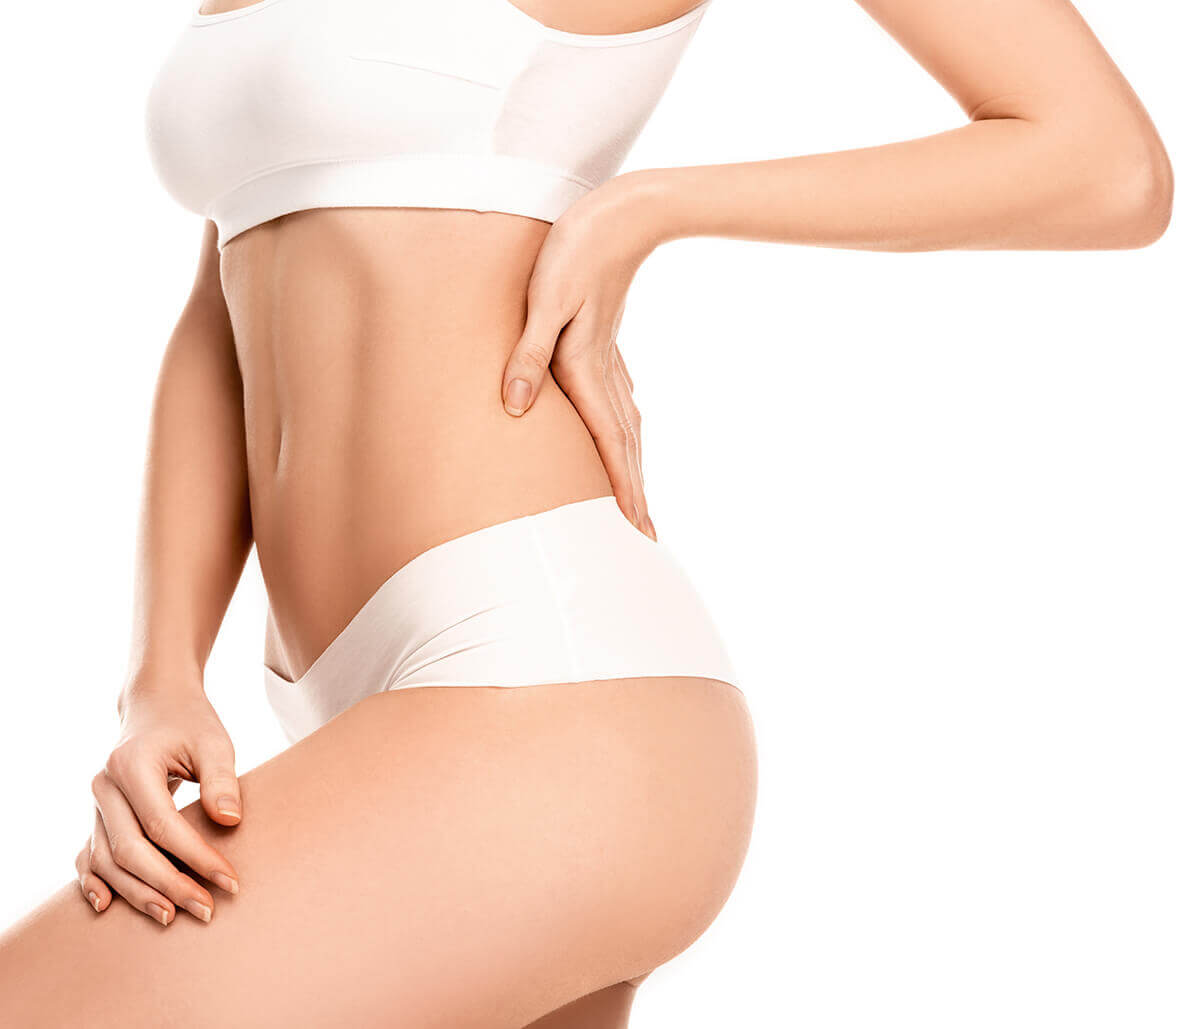 Evolve the Latest Non-surgical Body Contouring from Your Dermatologist in Hamilton, ON Area